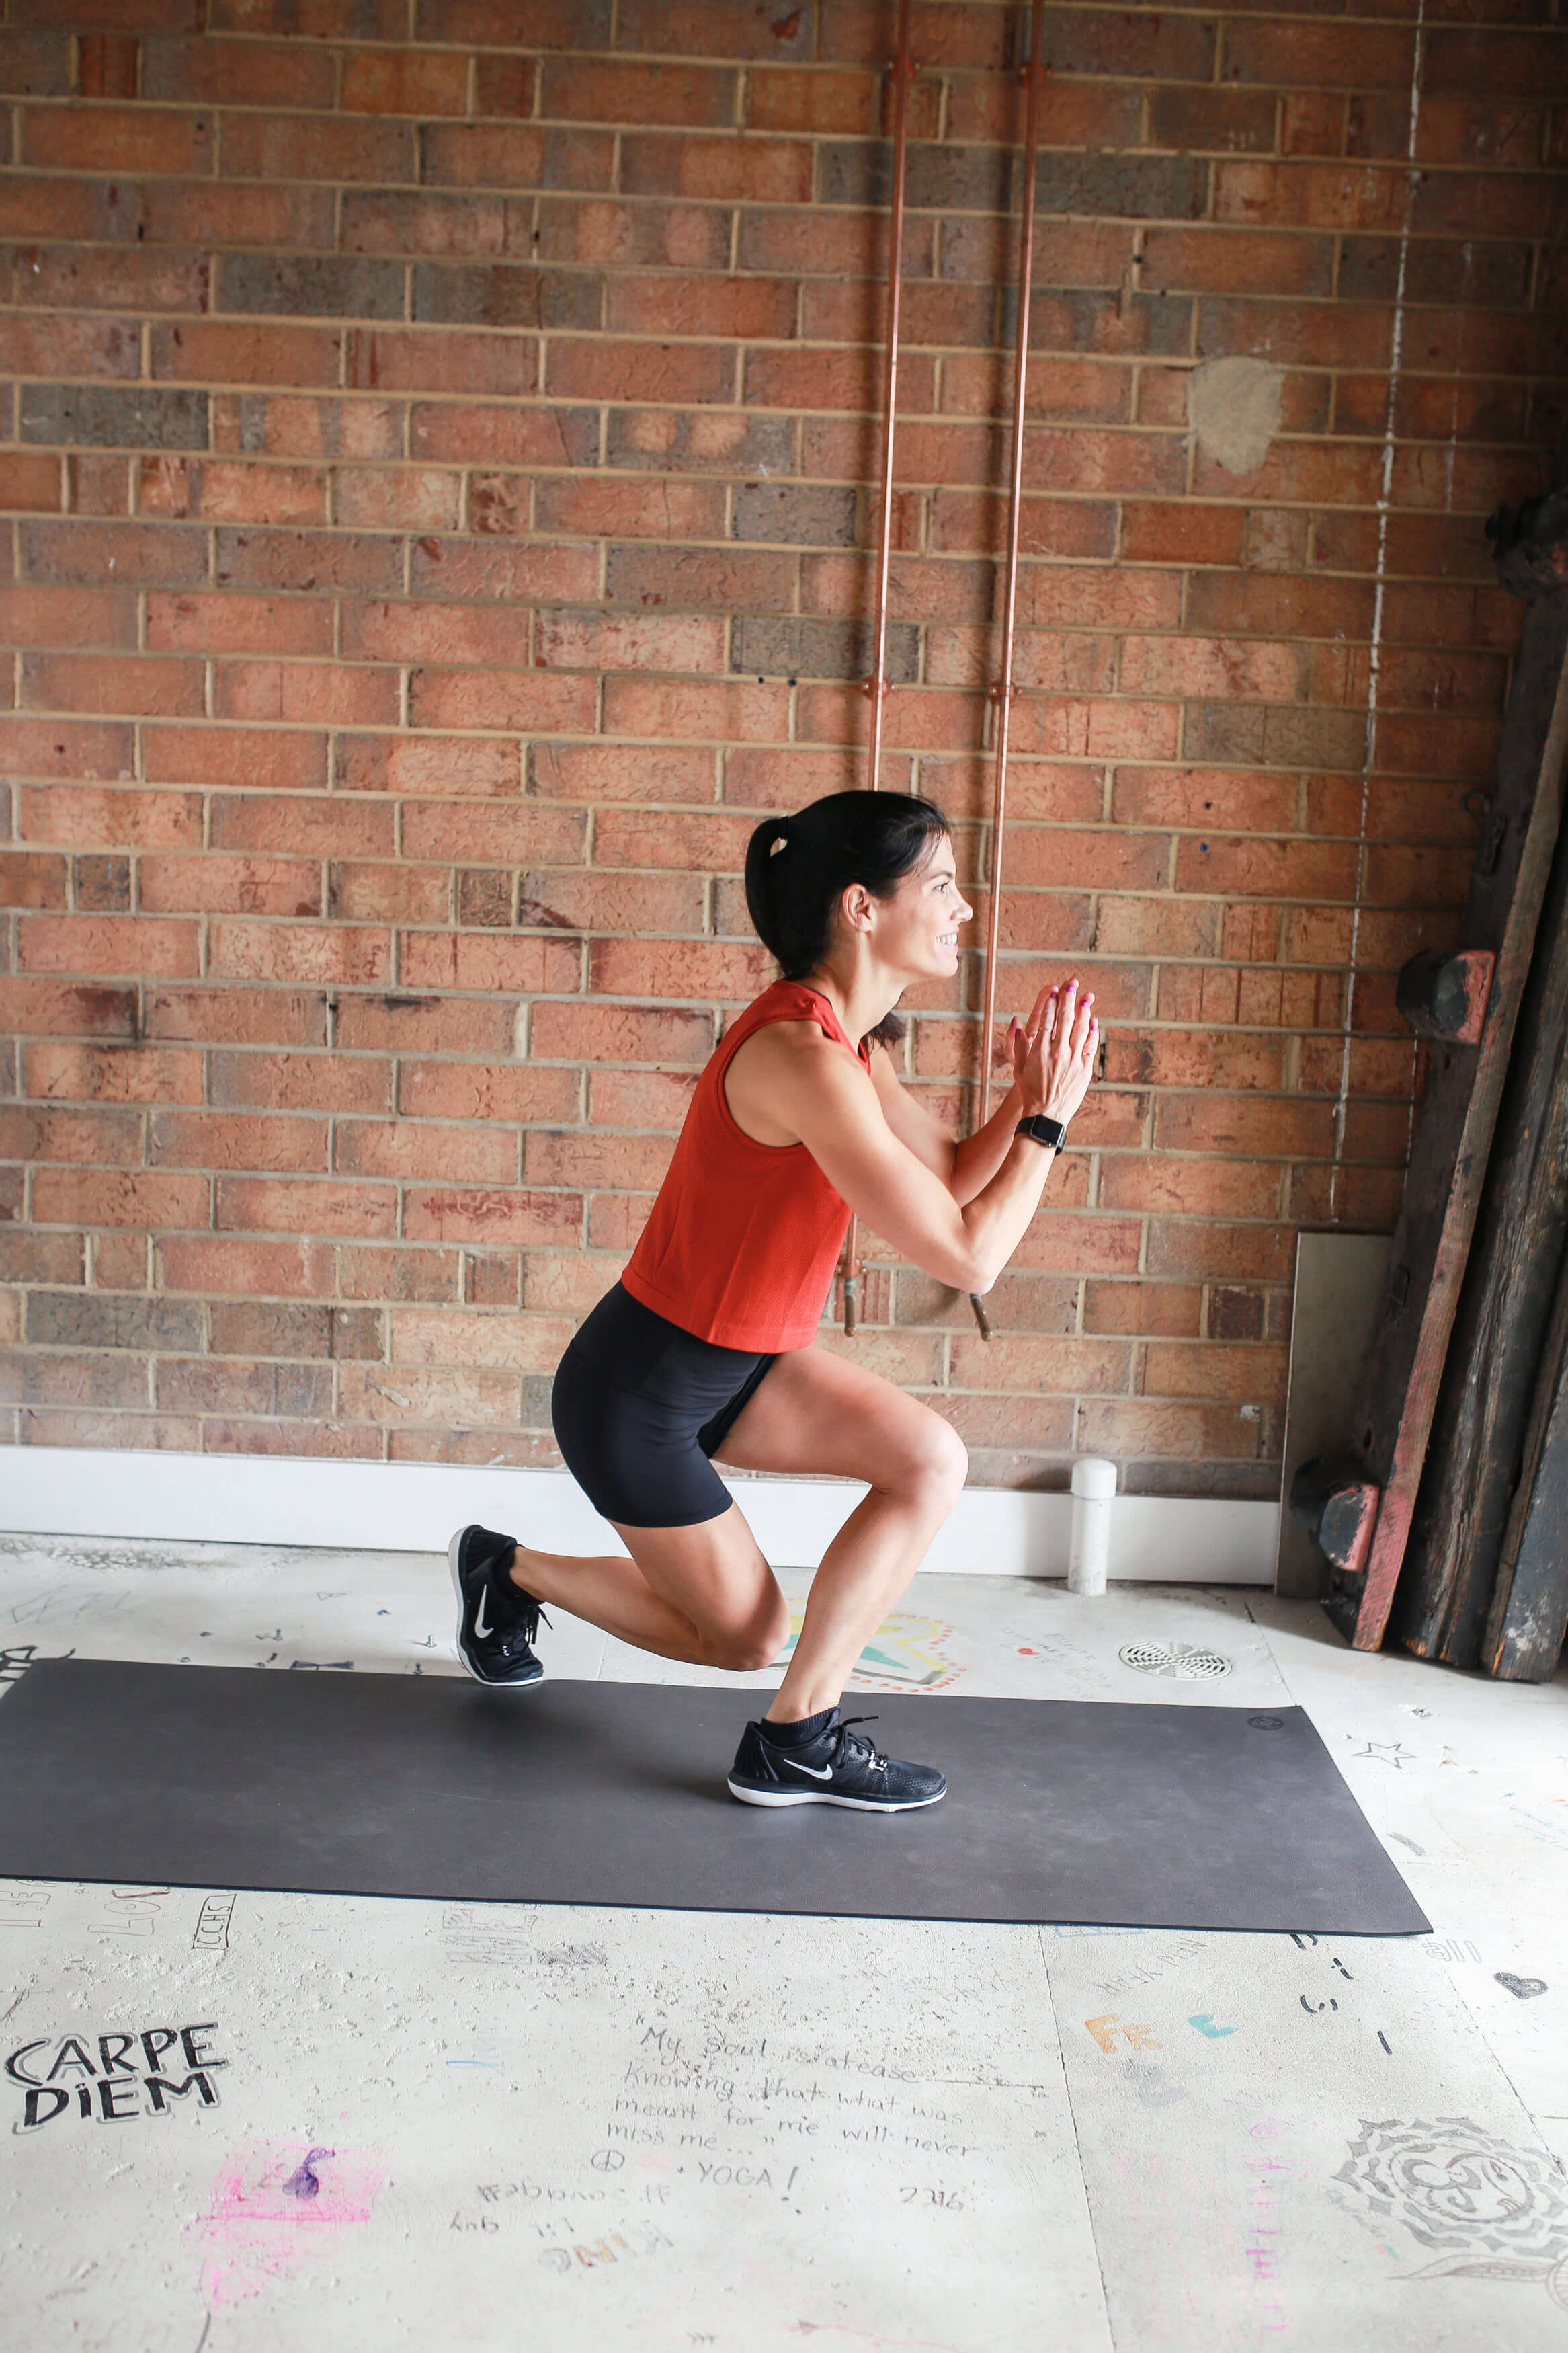 Summer Bodyweight Workouts + Jumping on the Bicycle Short Trend